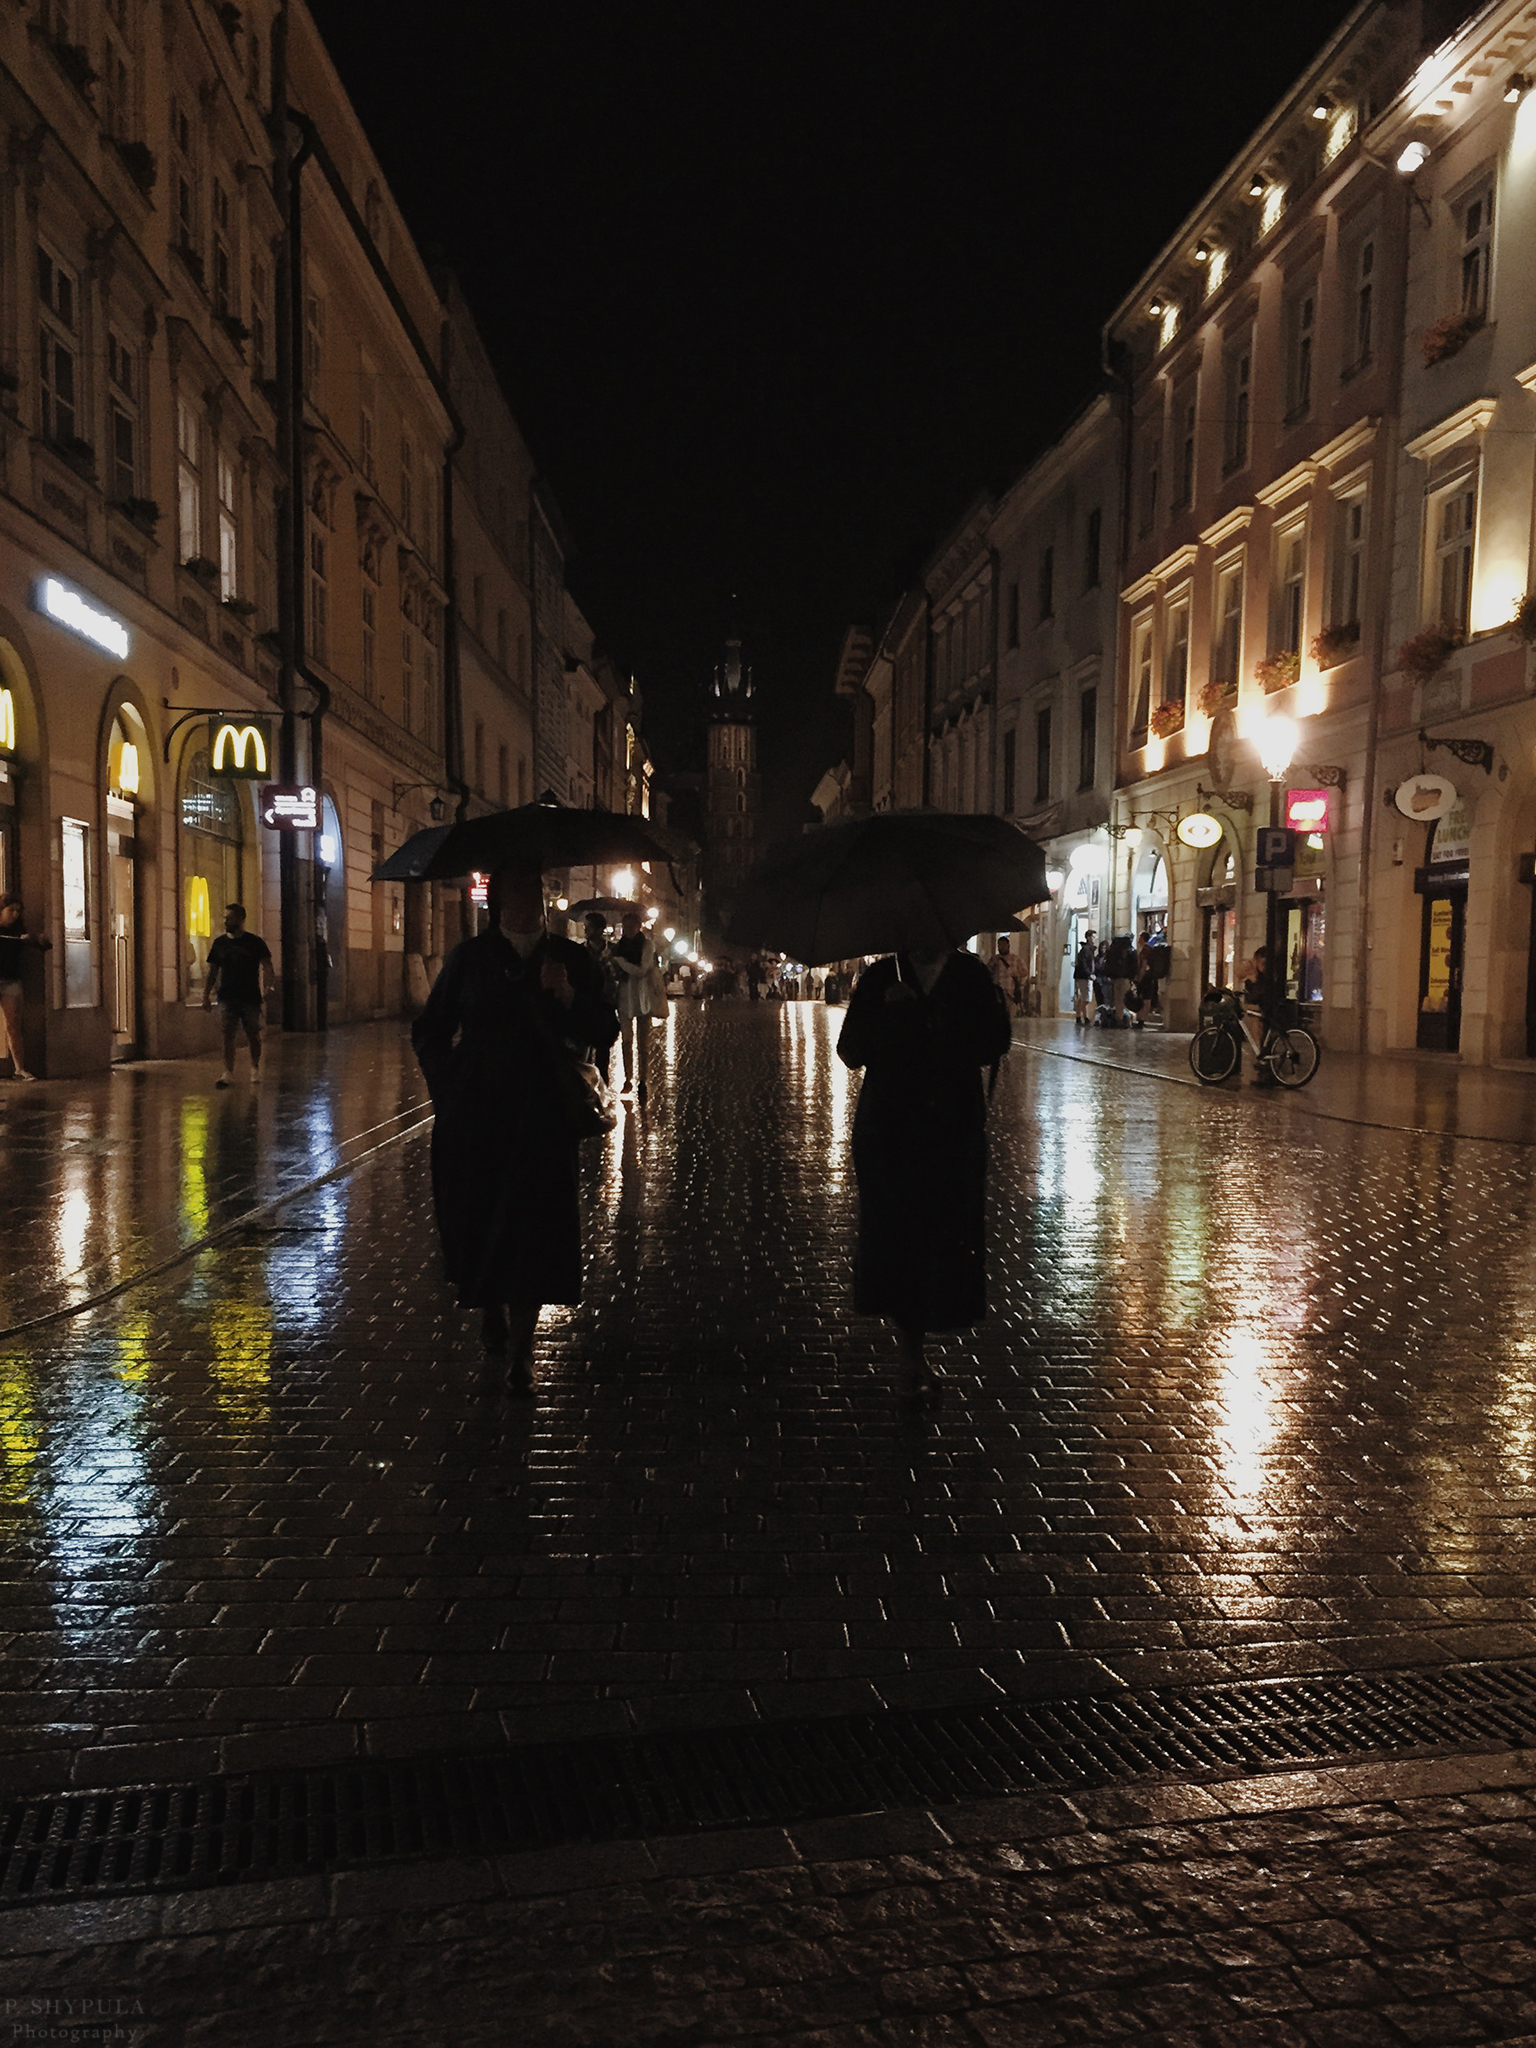 Two nuns in Krakow